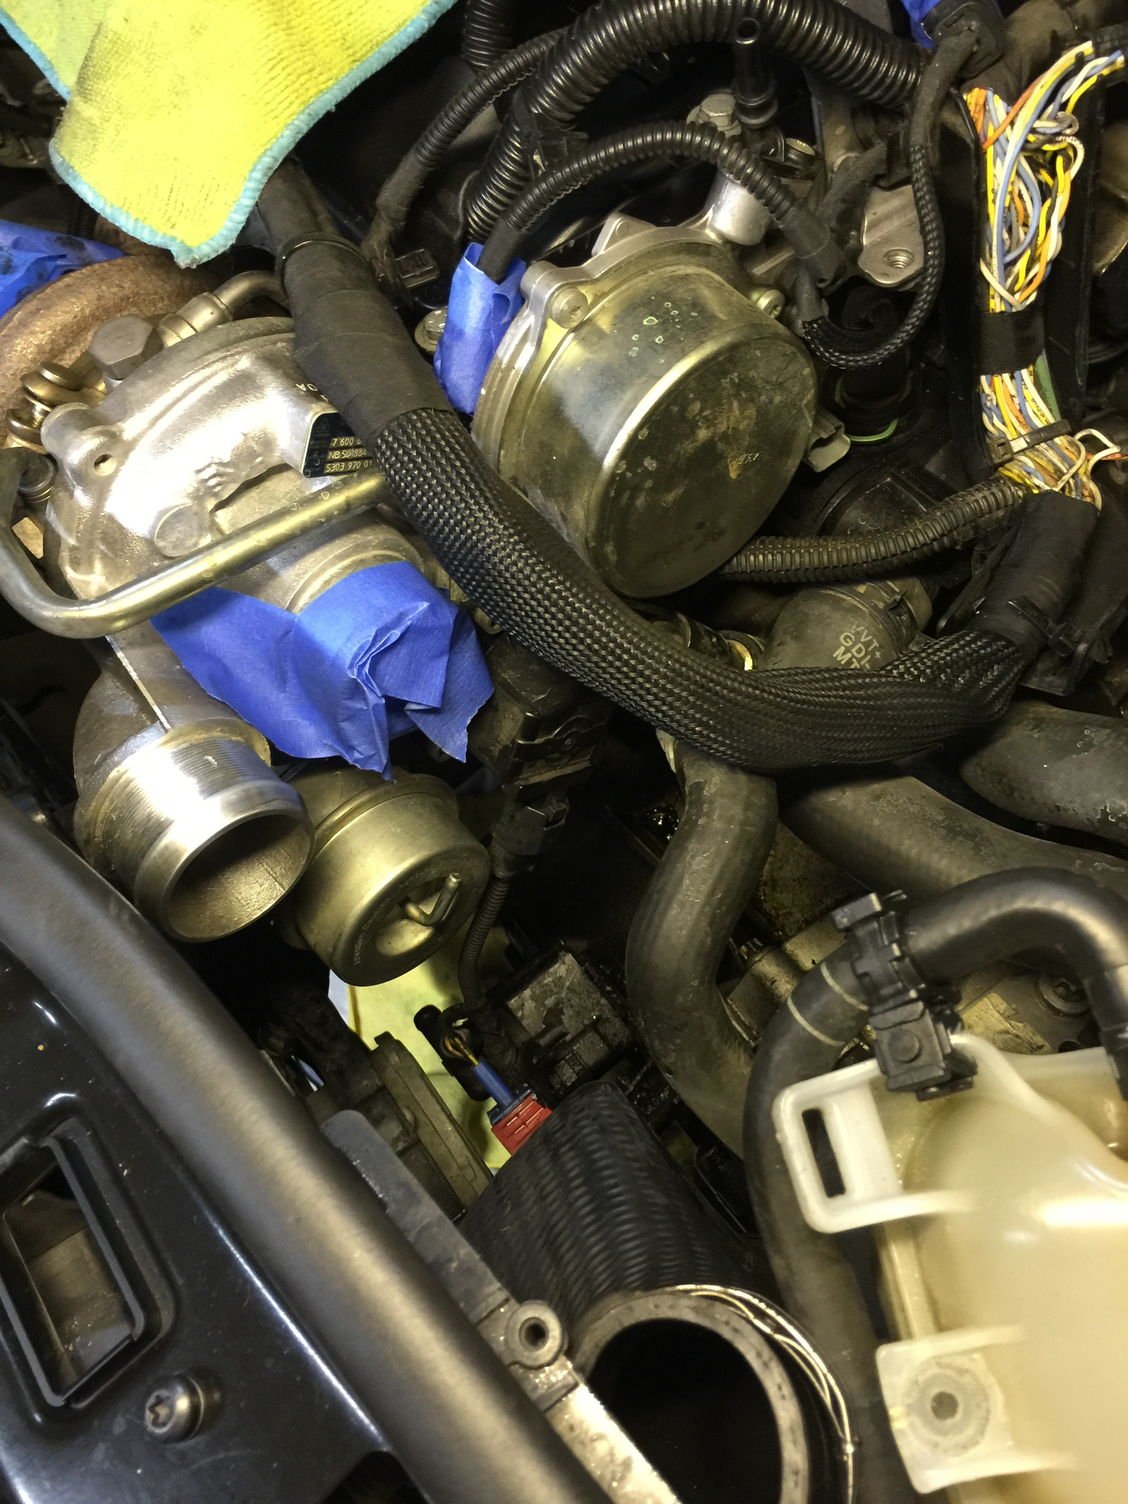 Oil Leak Burning Losing Coolant North American Motoring Engine Burn I Loosened And Bent Back The Large Rubber Hose Going Into Turbo Giving Me Enough Room To Get Down See Two Aux Water Pump Bolts Which Then